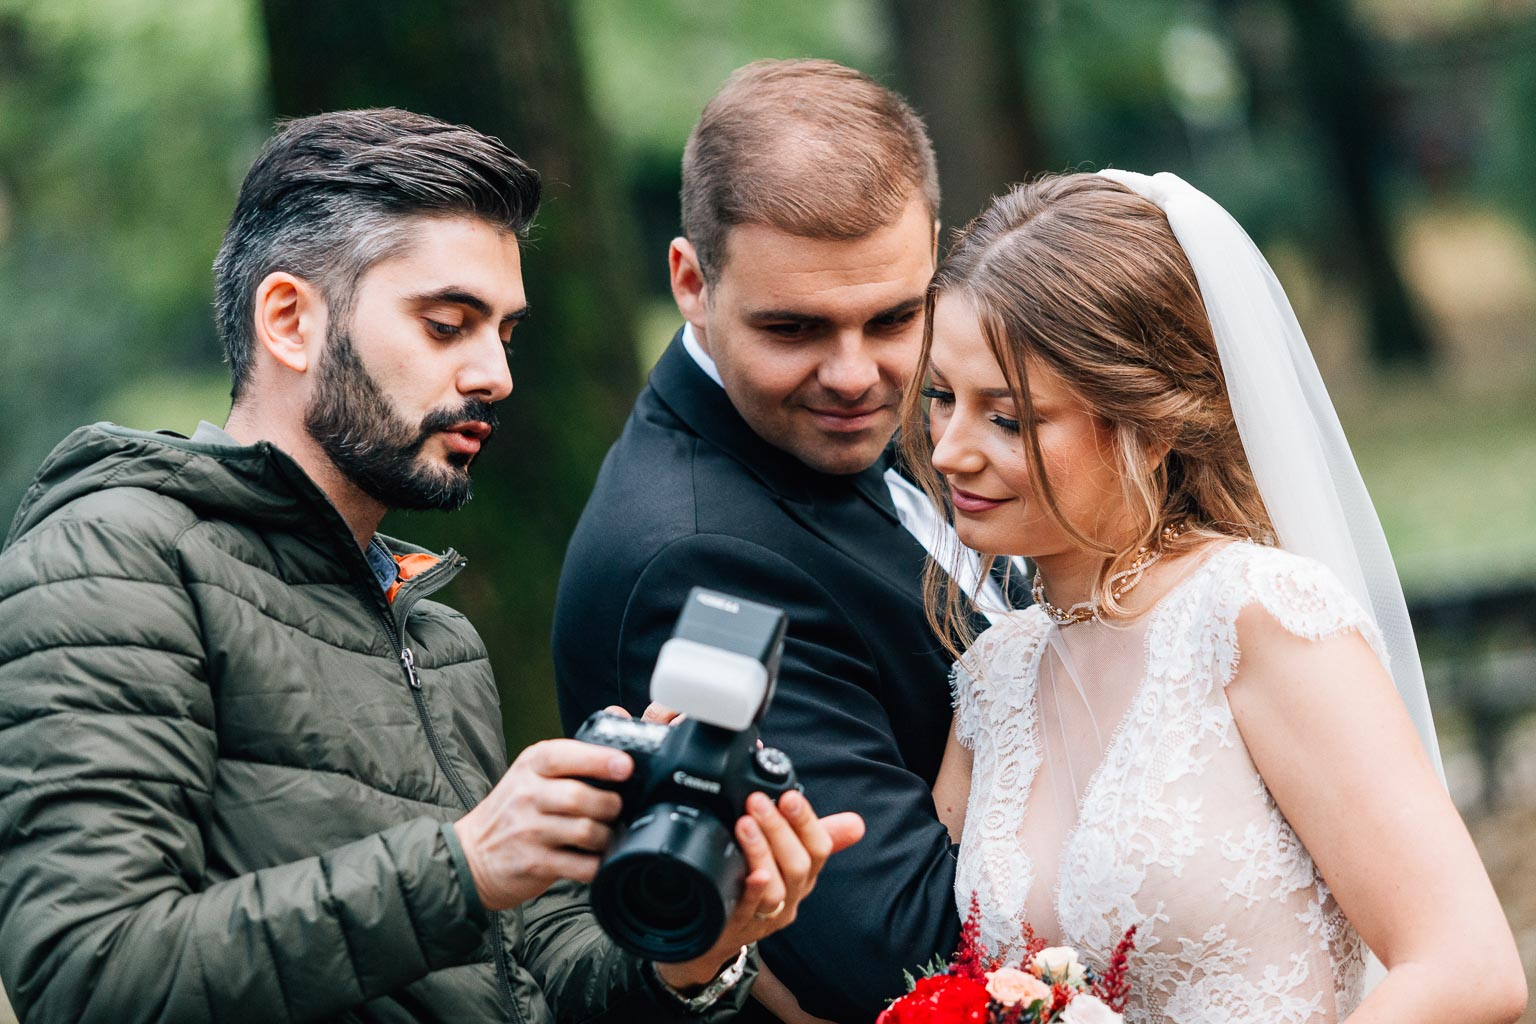 "<span class=""hidepagetitles_toggle_title"">Destination Photographer 